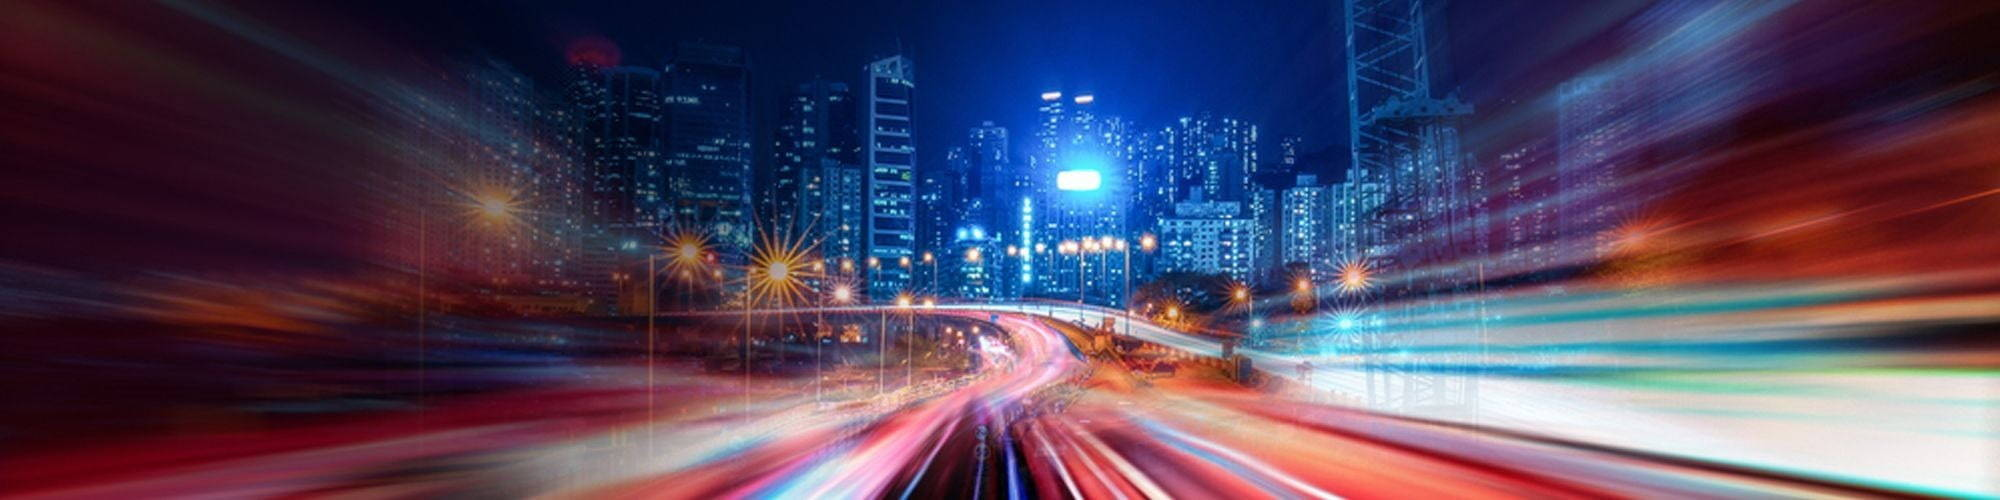 Highway with lights and city background